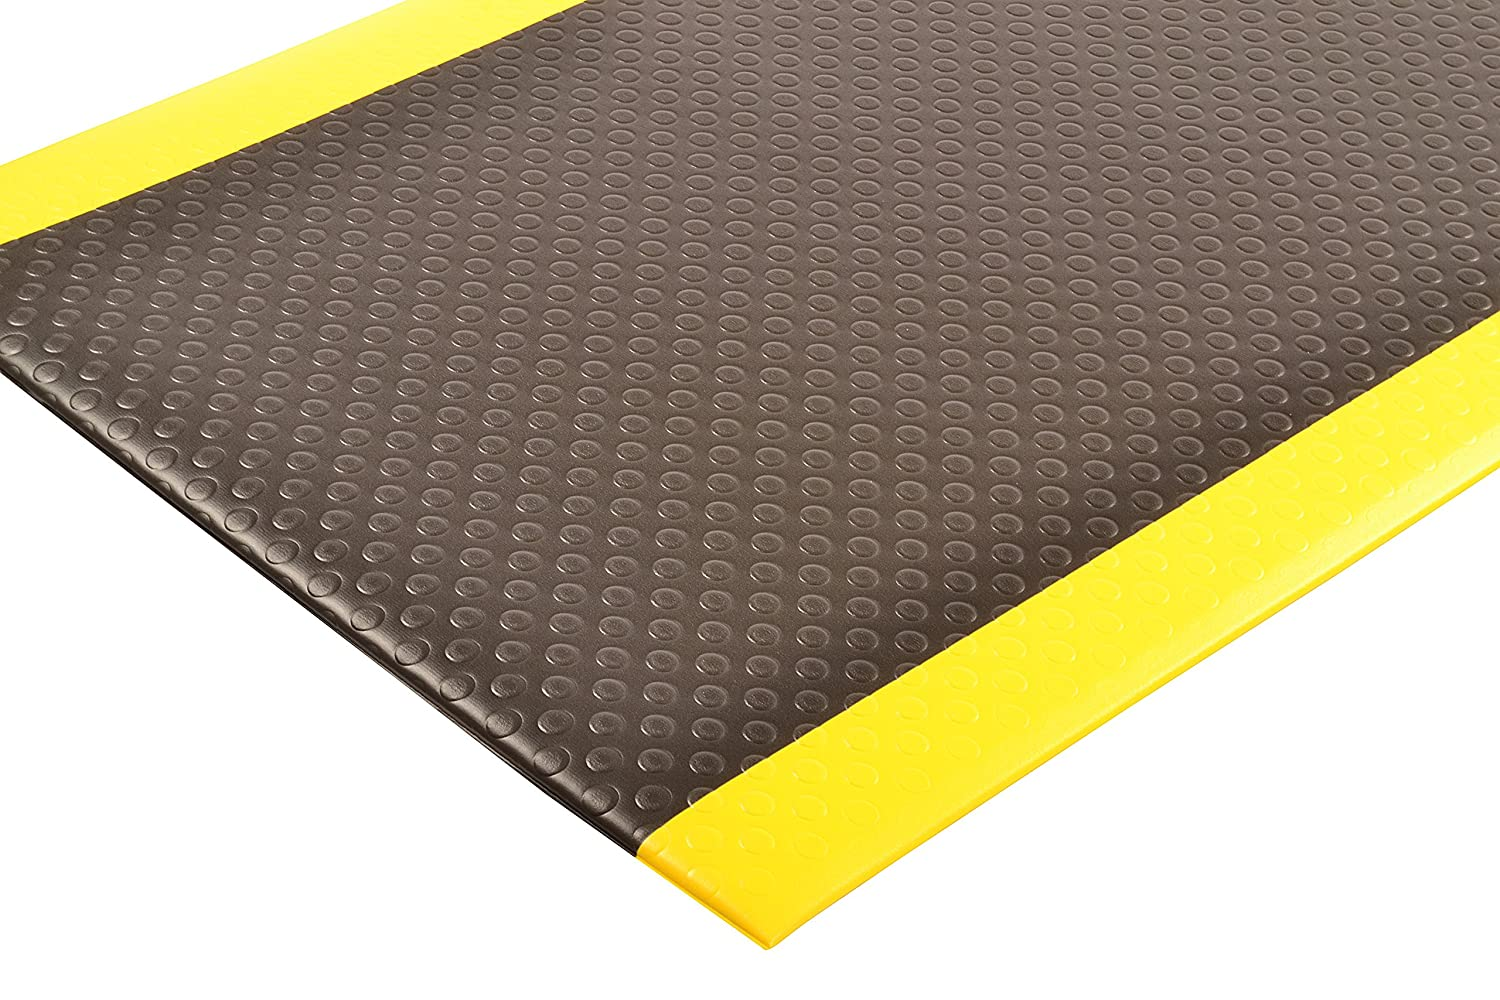 Black//Yellow for Dry Areas 3 Width x 12 Length x 1//2 Thickness NoTrax 417 Bubble Sof-Tred Safety//Anti-Fatigue Mat with Dyna-Shield PVC Sponge